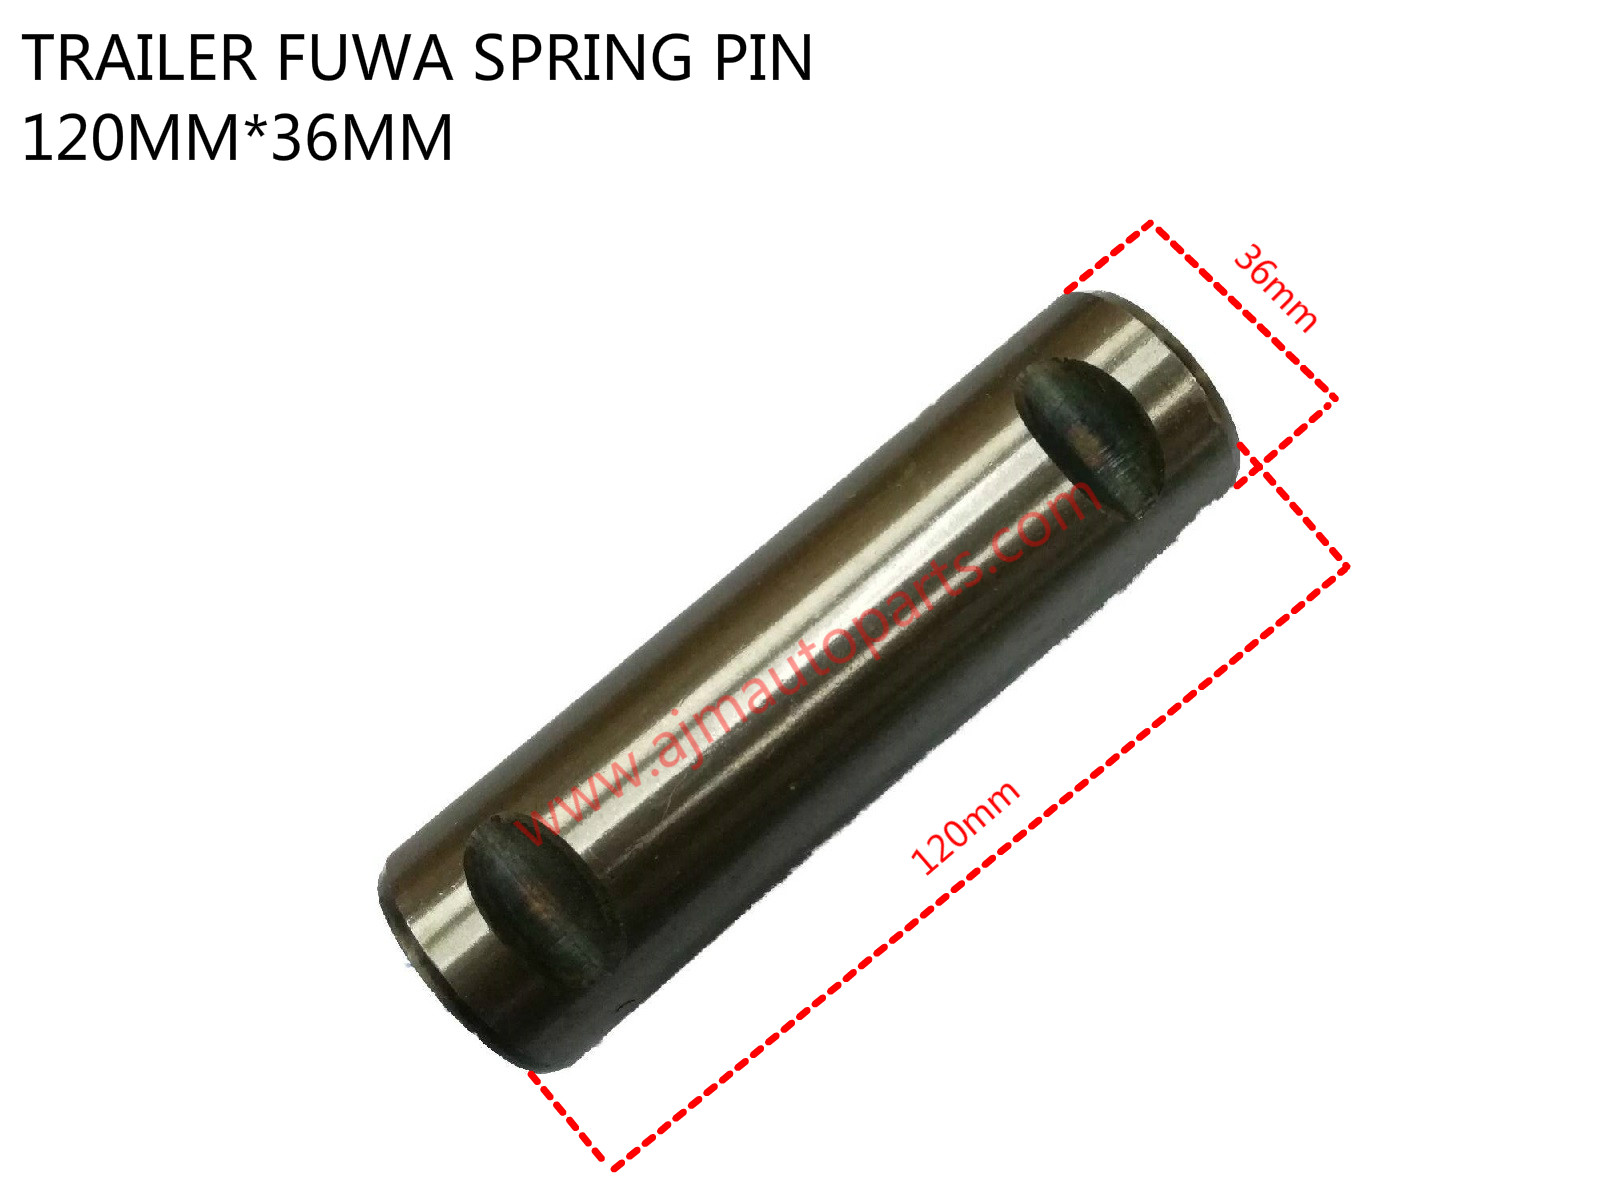 TRAILER FUWA SPRING PIN-36MMX120MM